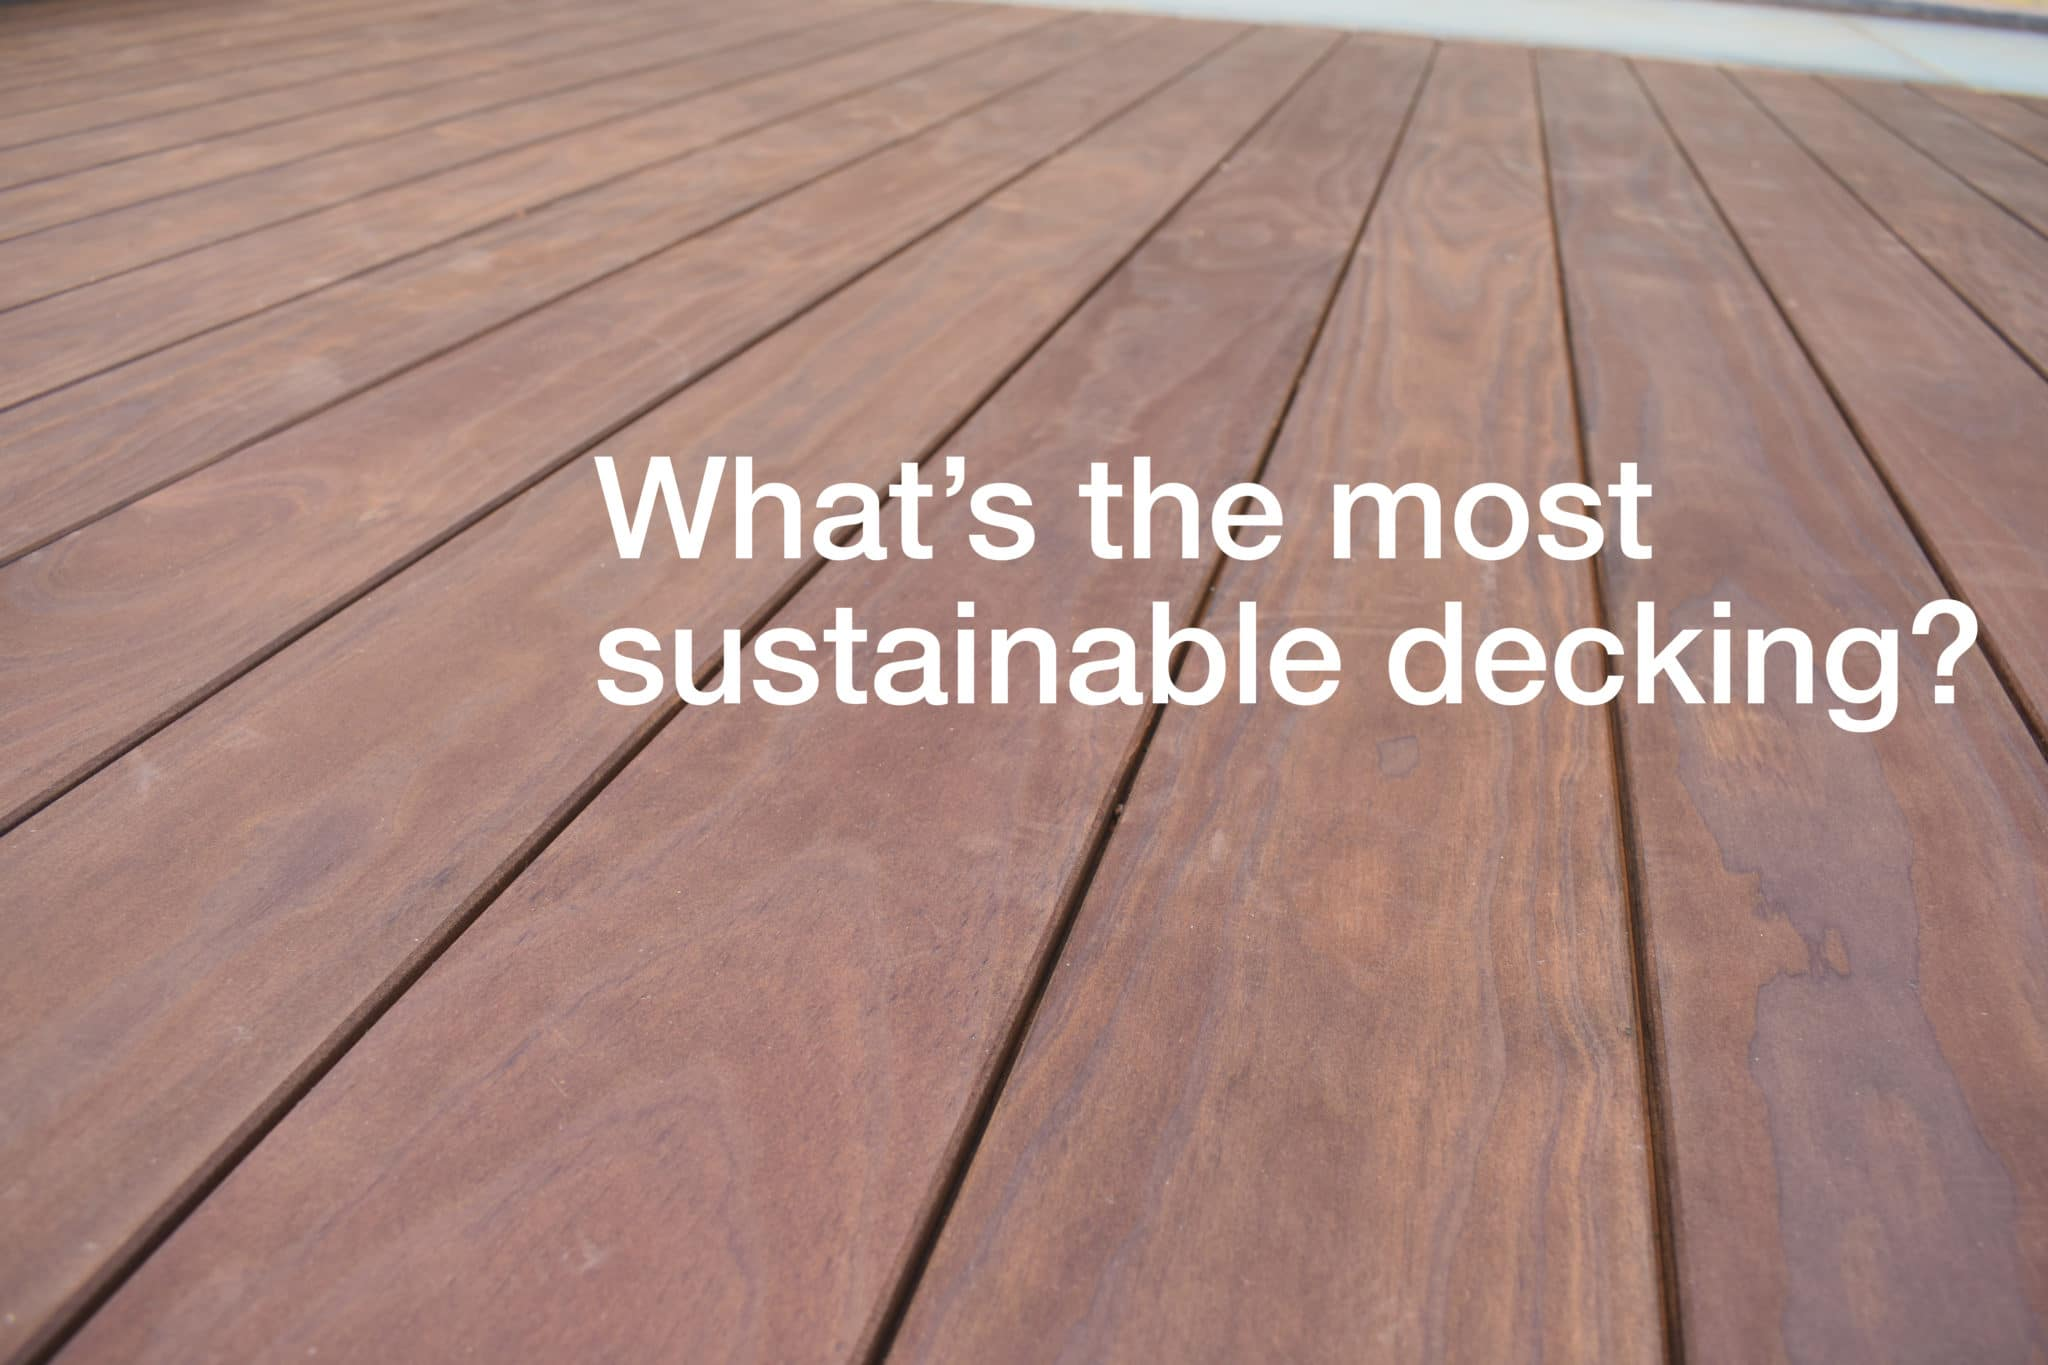 what's the most sustainable decking?